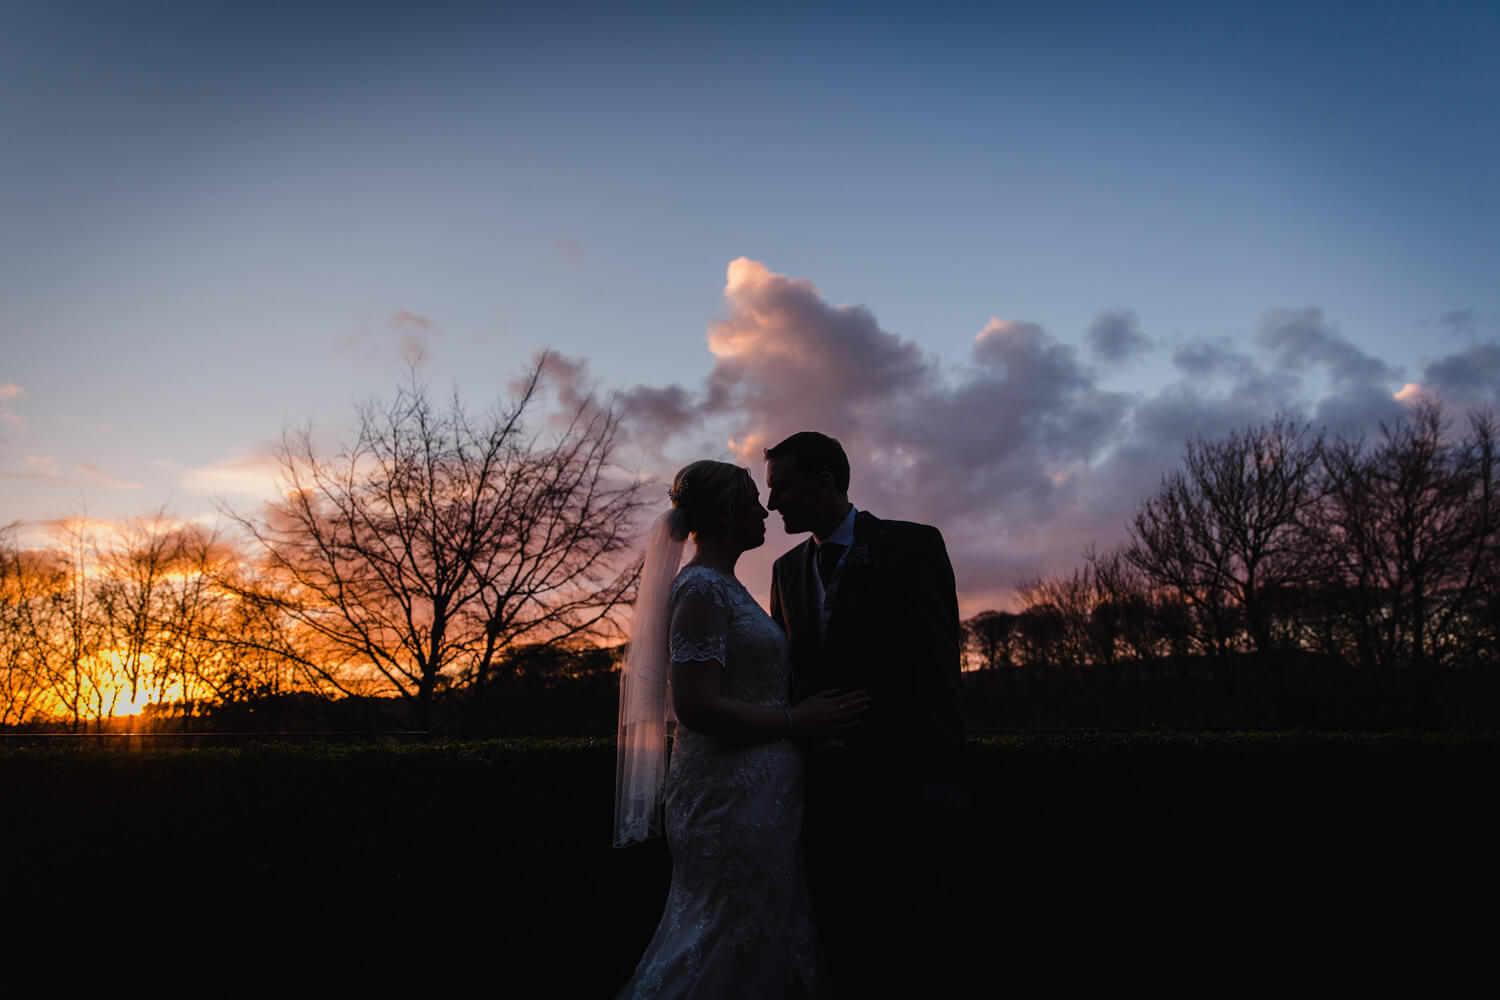 low light exposure silhouette of newlyweds with sunset background